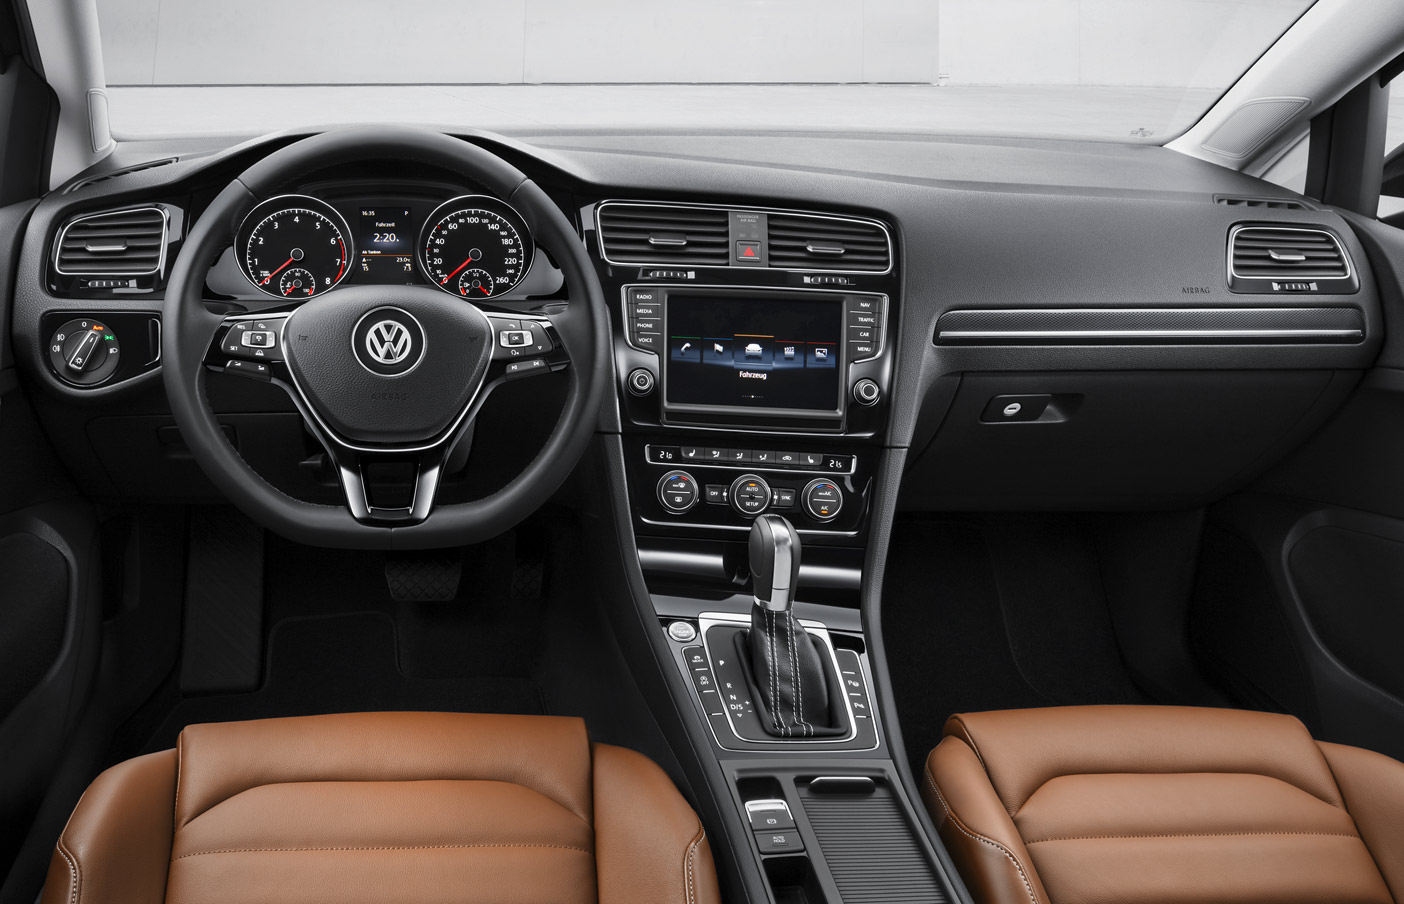 volkswagen golf 7 interior 1 960x618